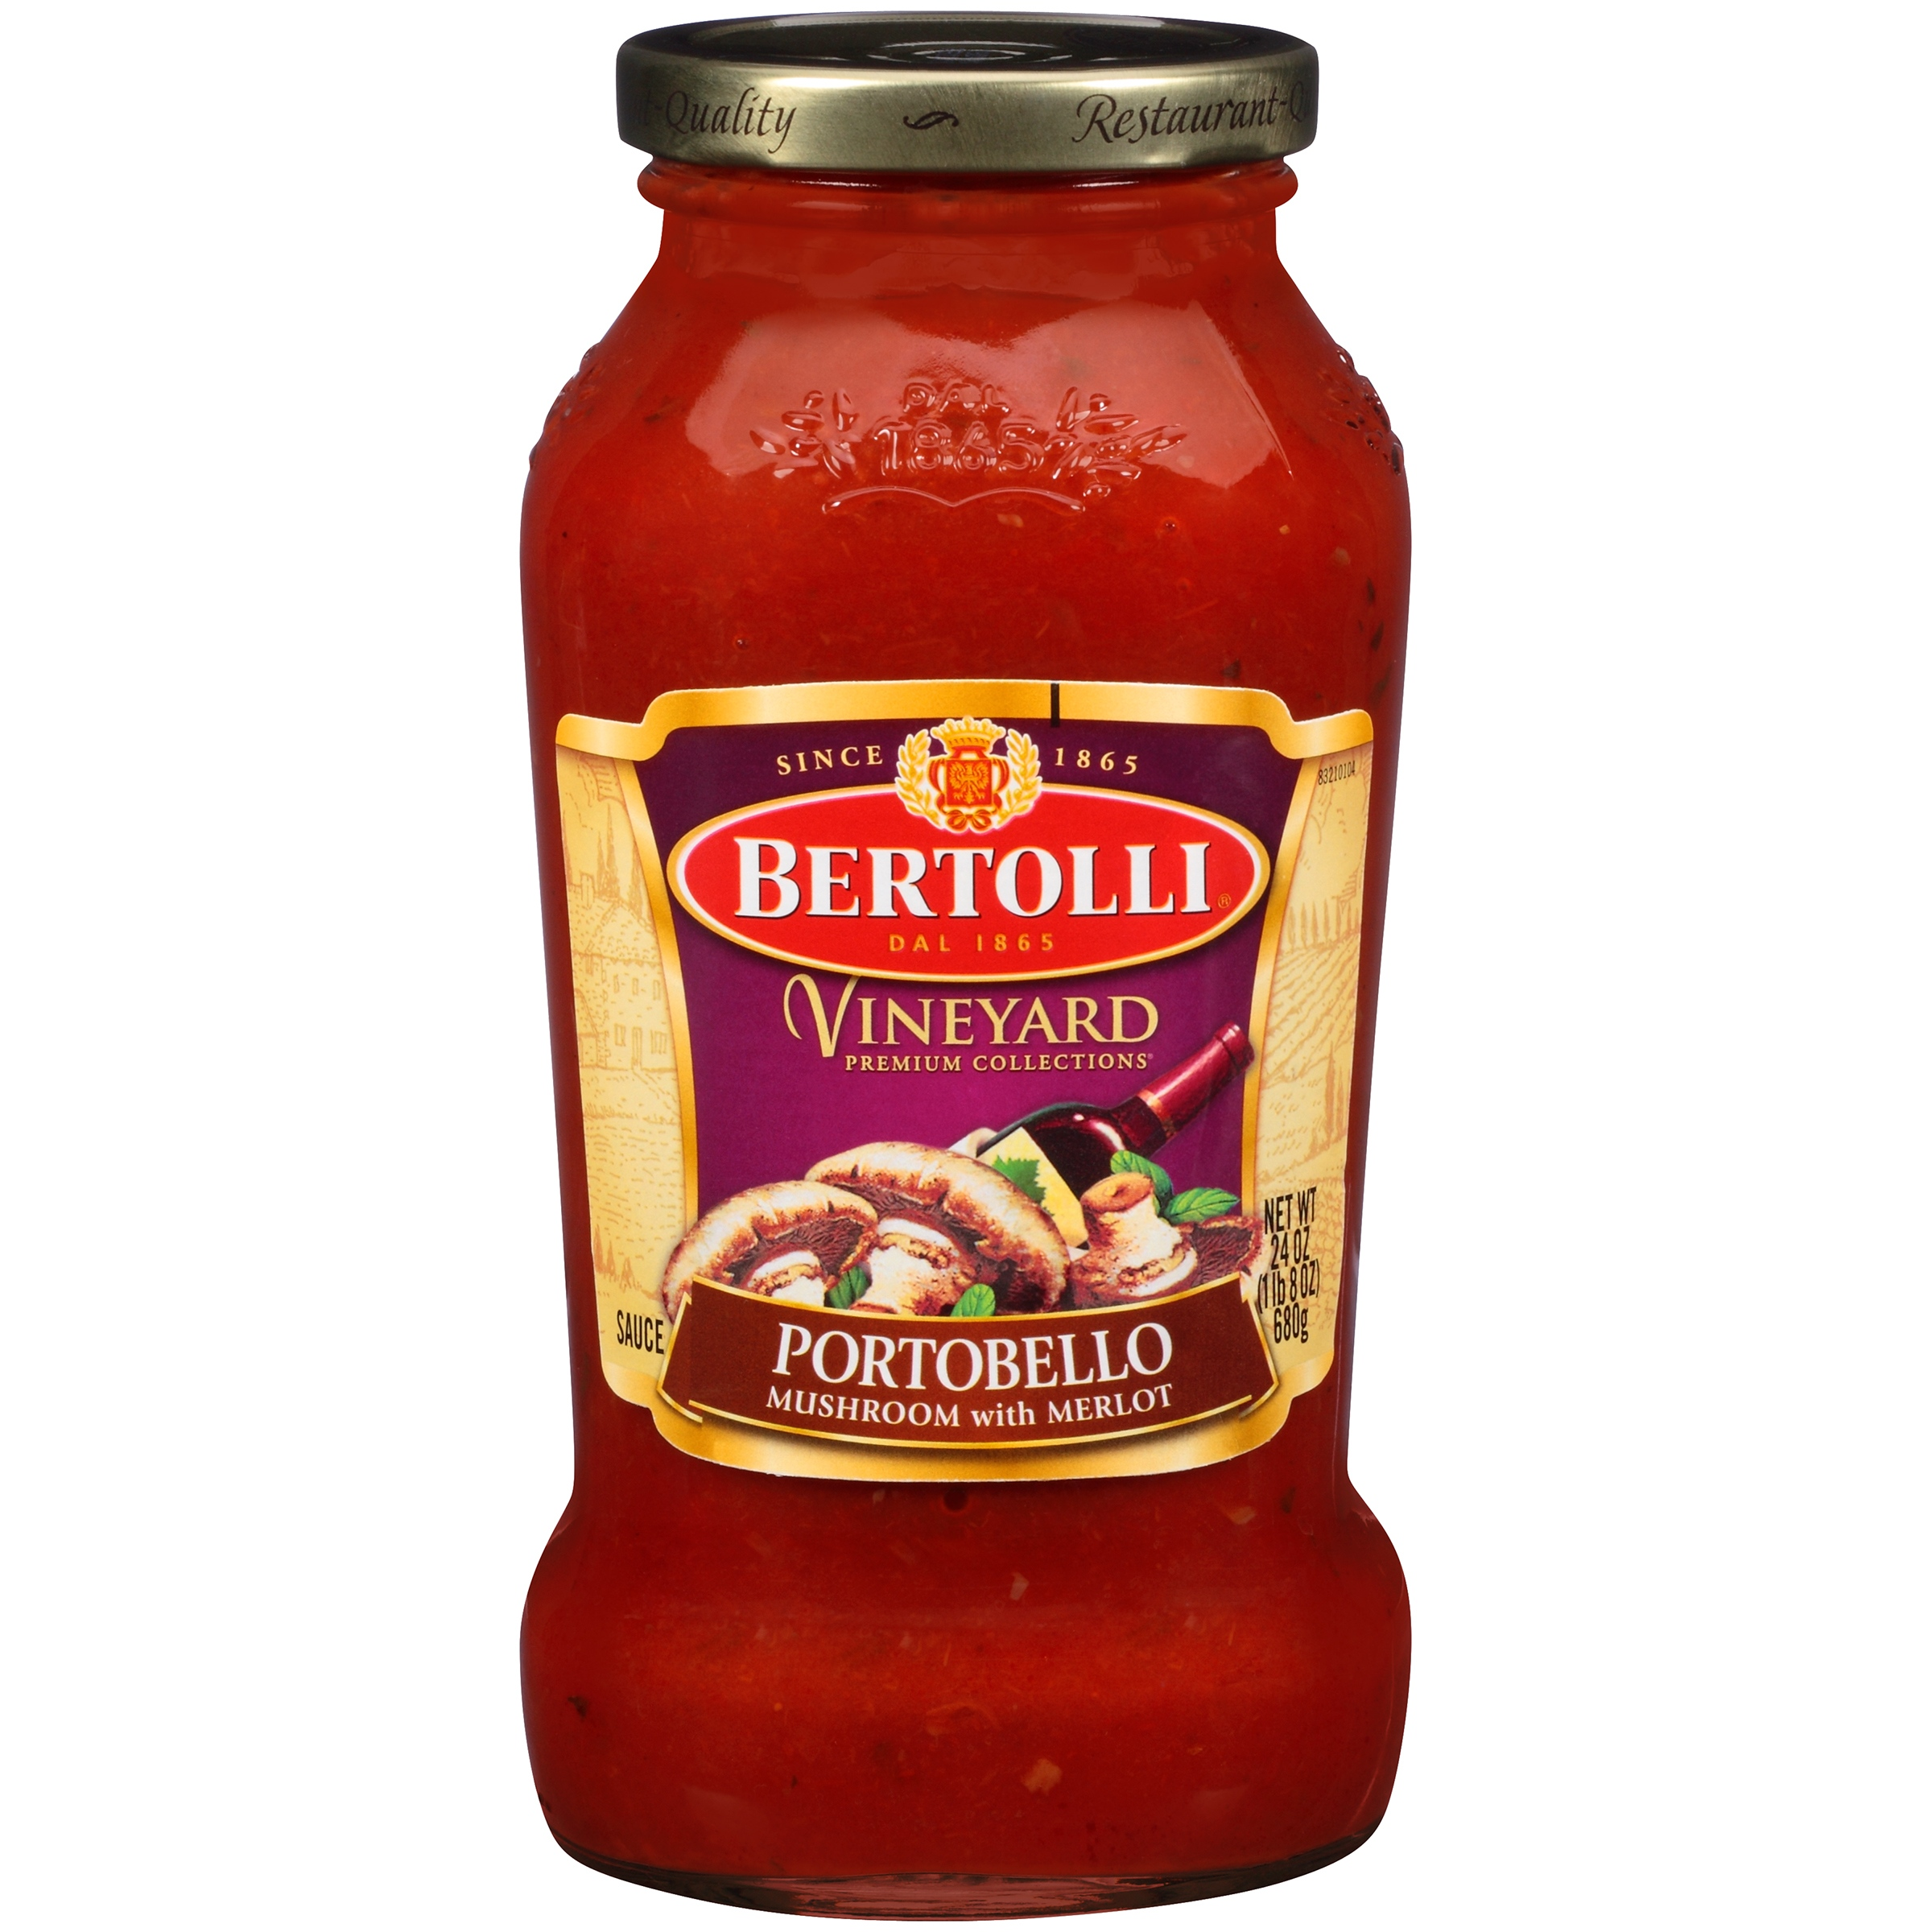 Bertolli Vineyard Portobello Mushroom with Merlot Pasta Sauce 24 oz.